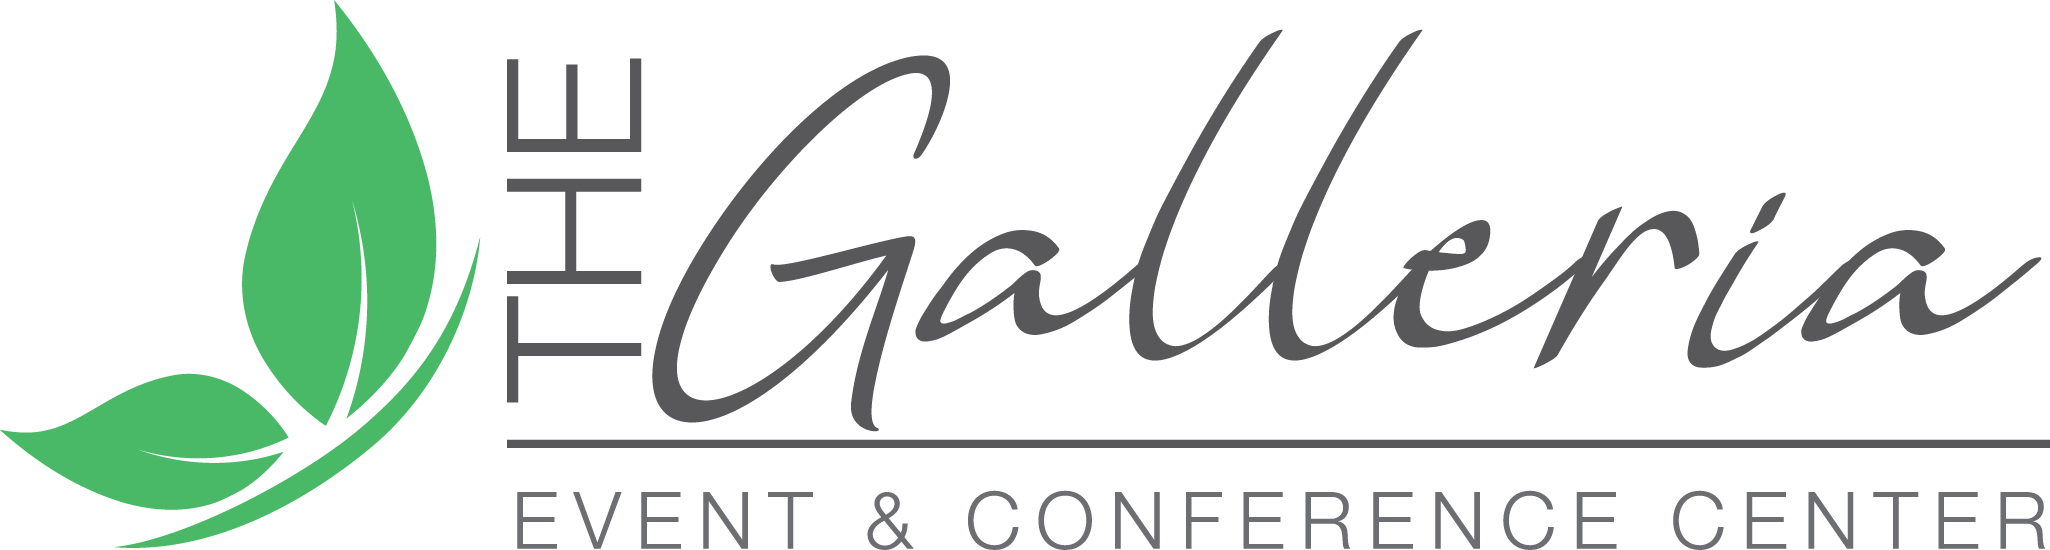 The Galleria Event and Conference Center